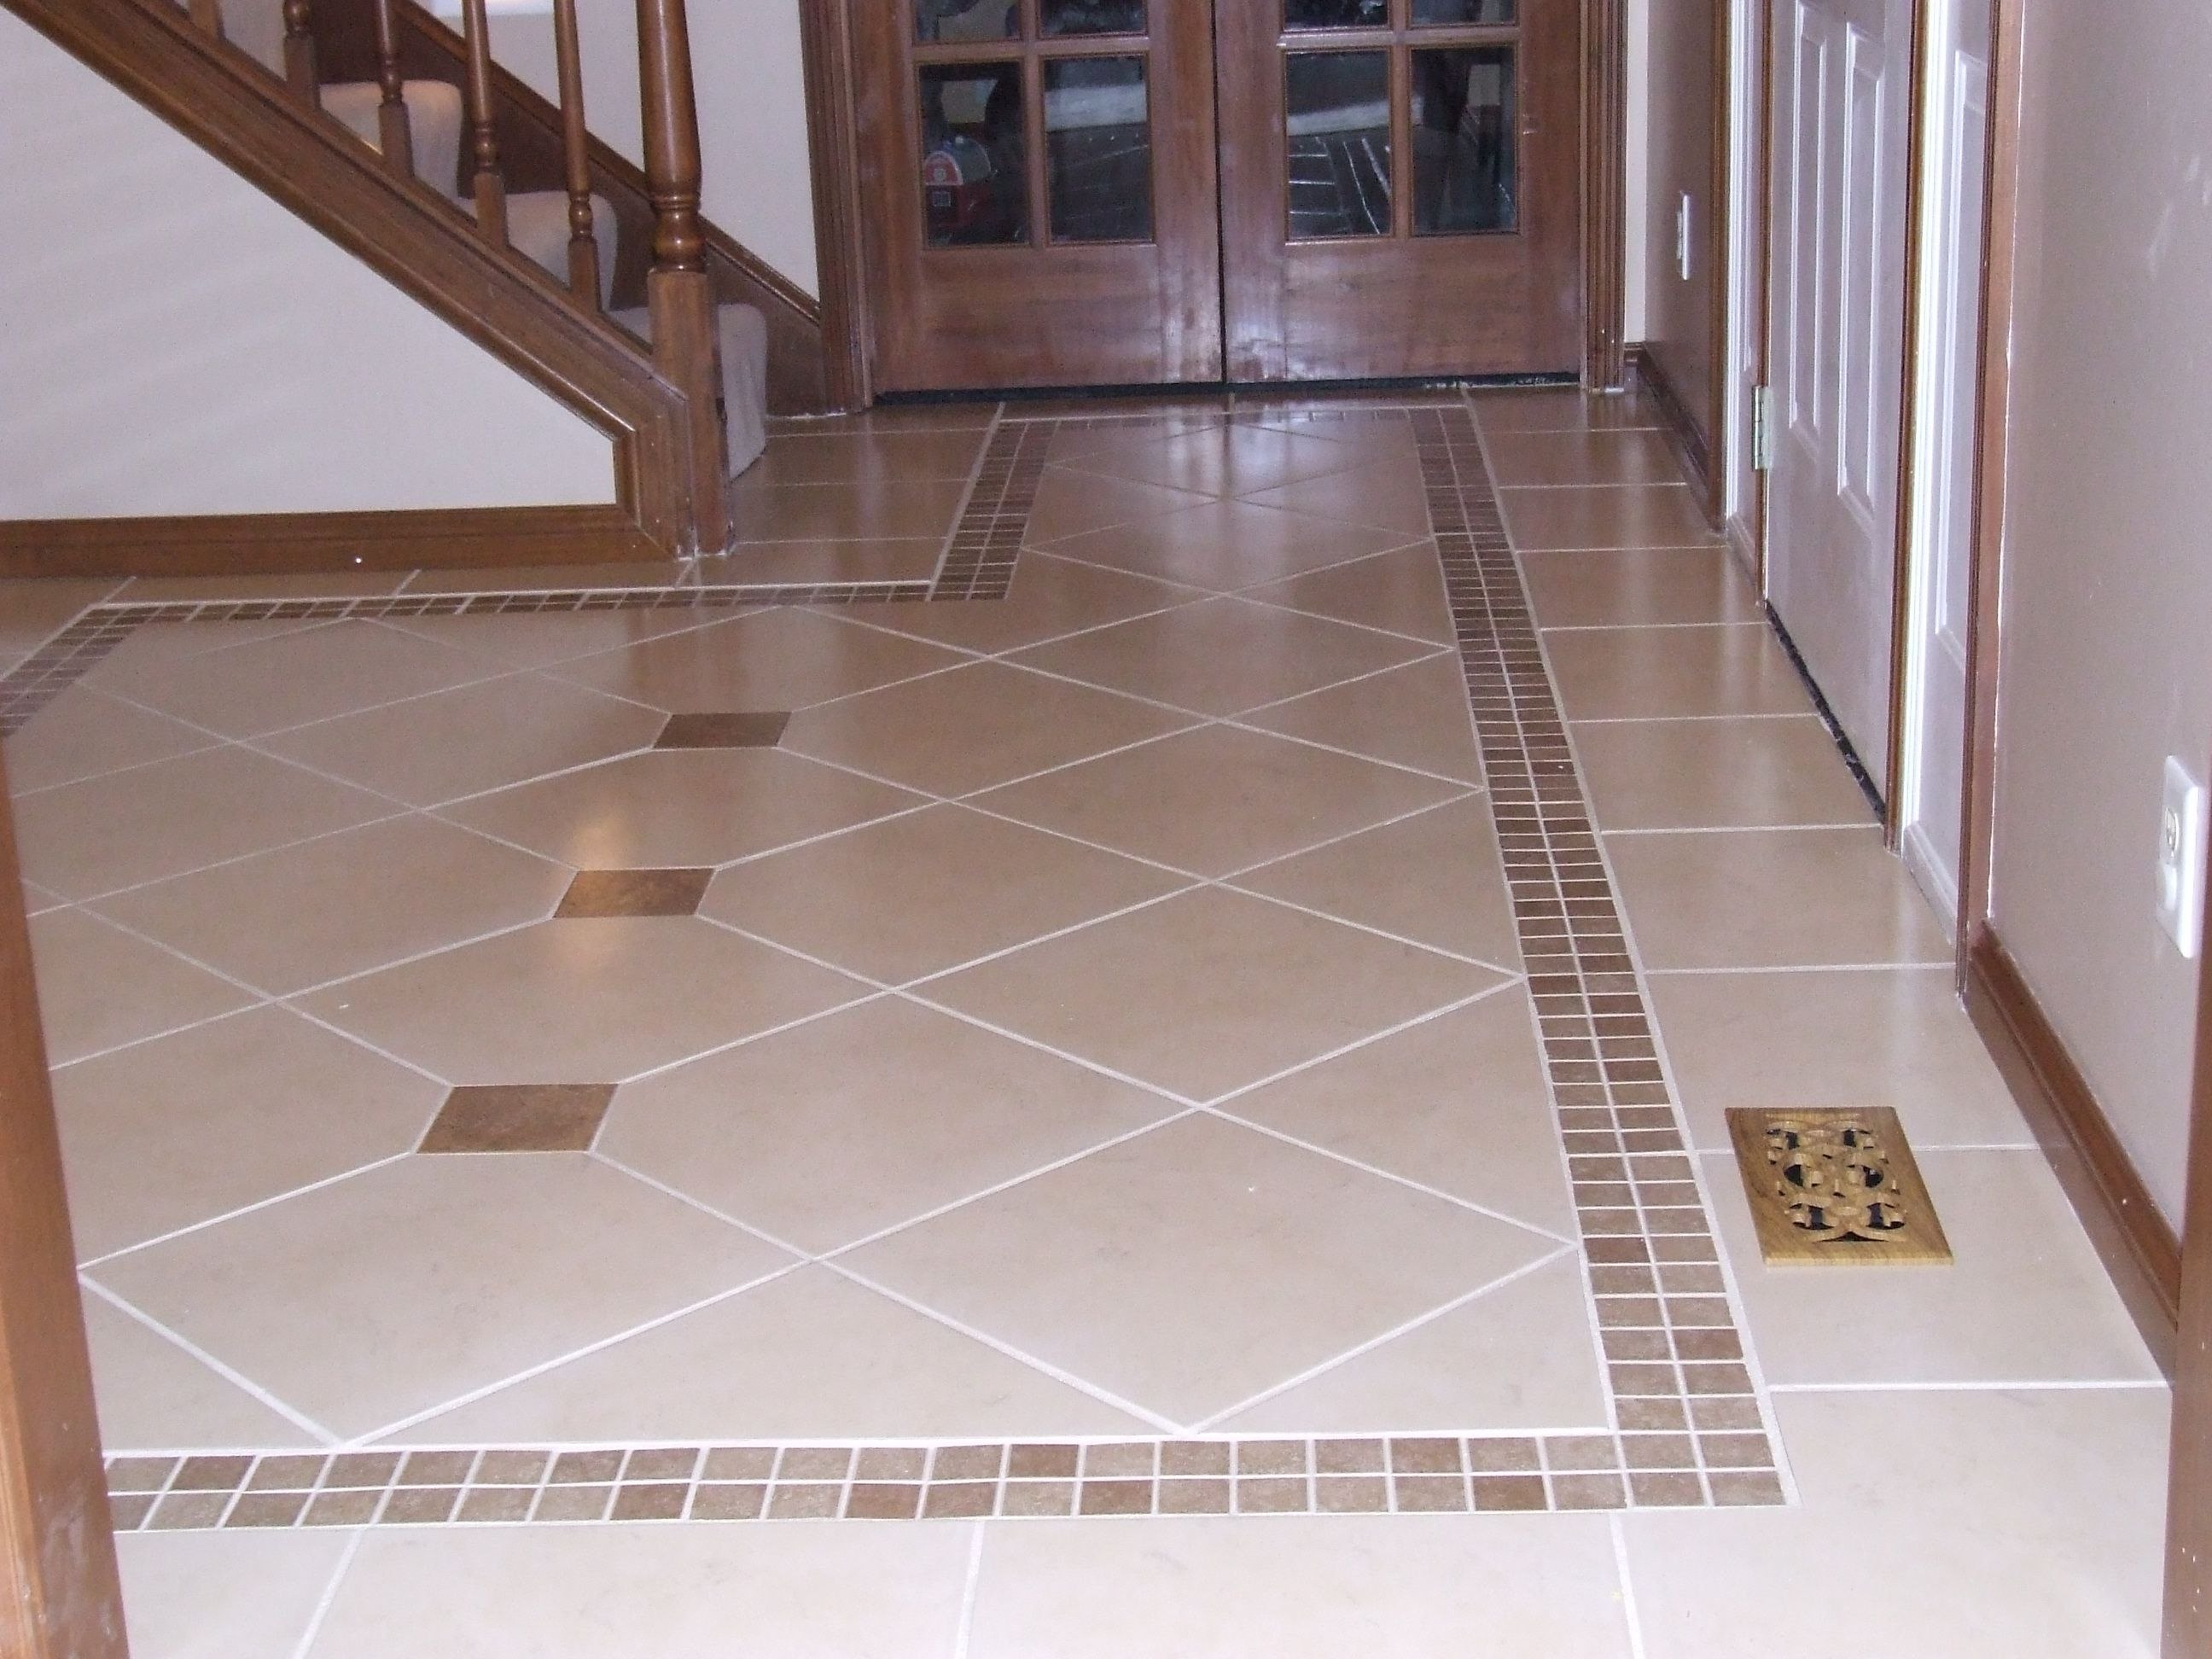 Floor Tile Patterns To Improve Home Interior Look Patterned Floor Tiles Tile Design Floor Tile Design